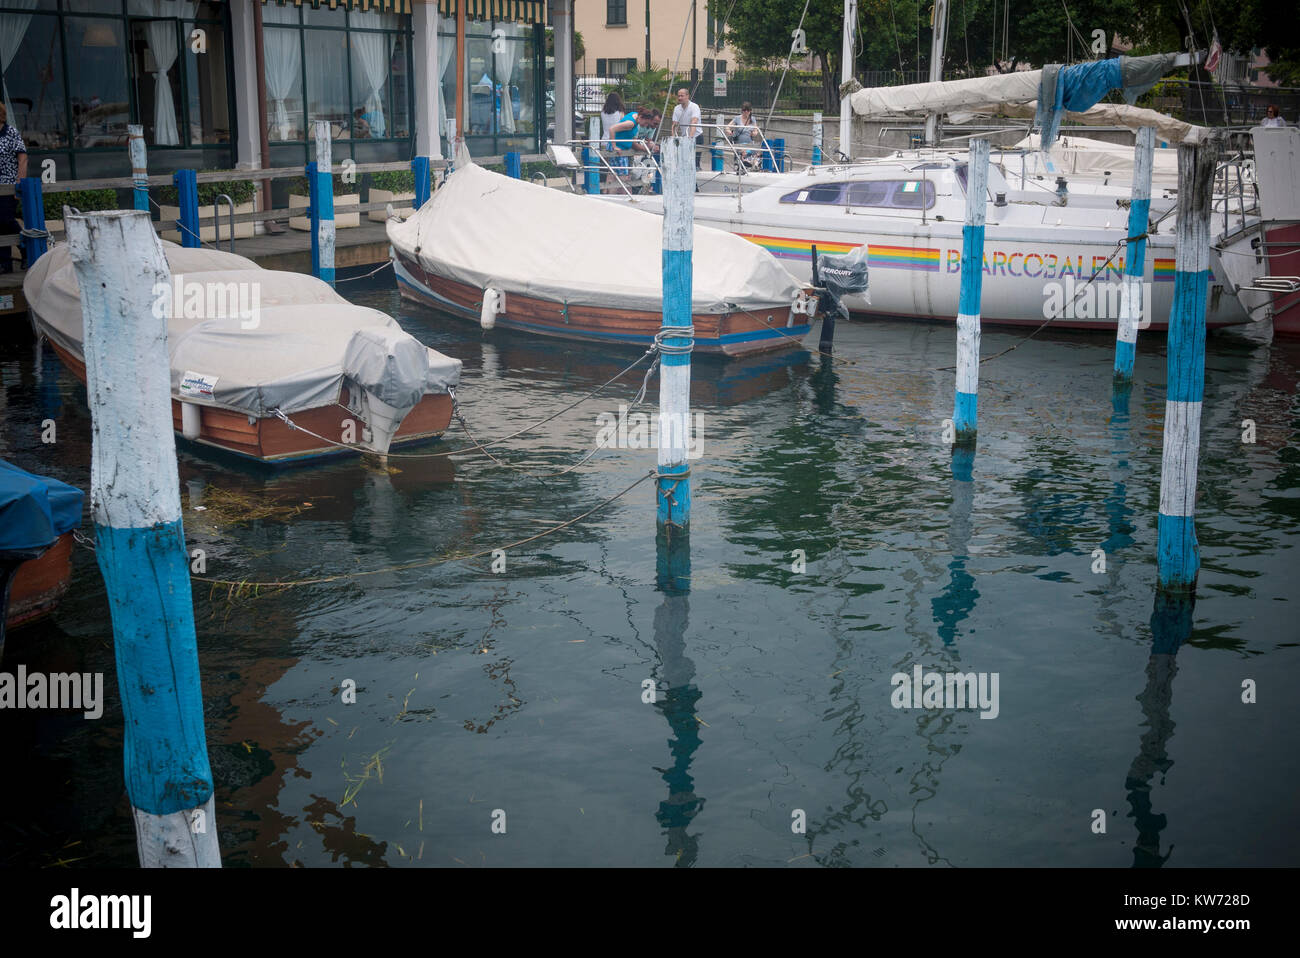 Boats moored on the jetty by Lake Iseo, Italy Stock Photo